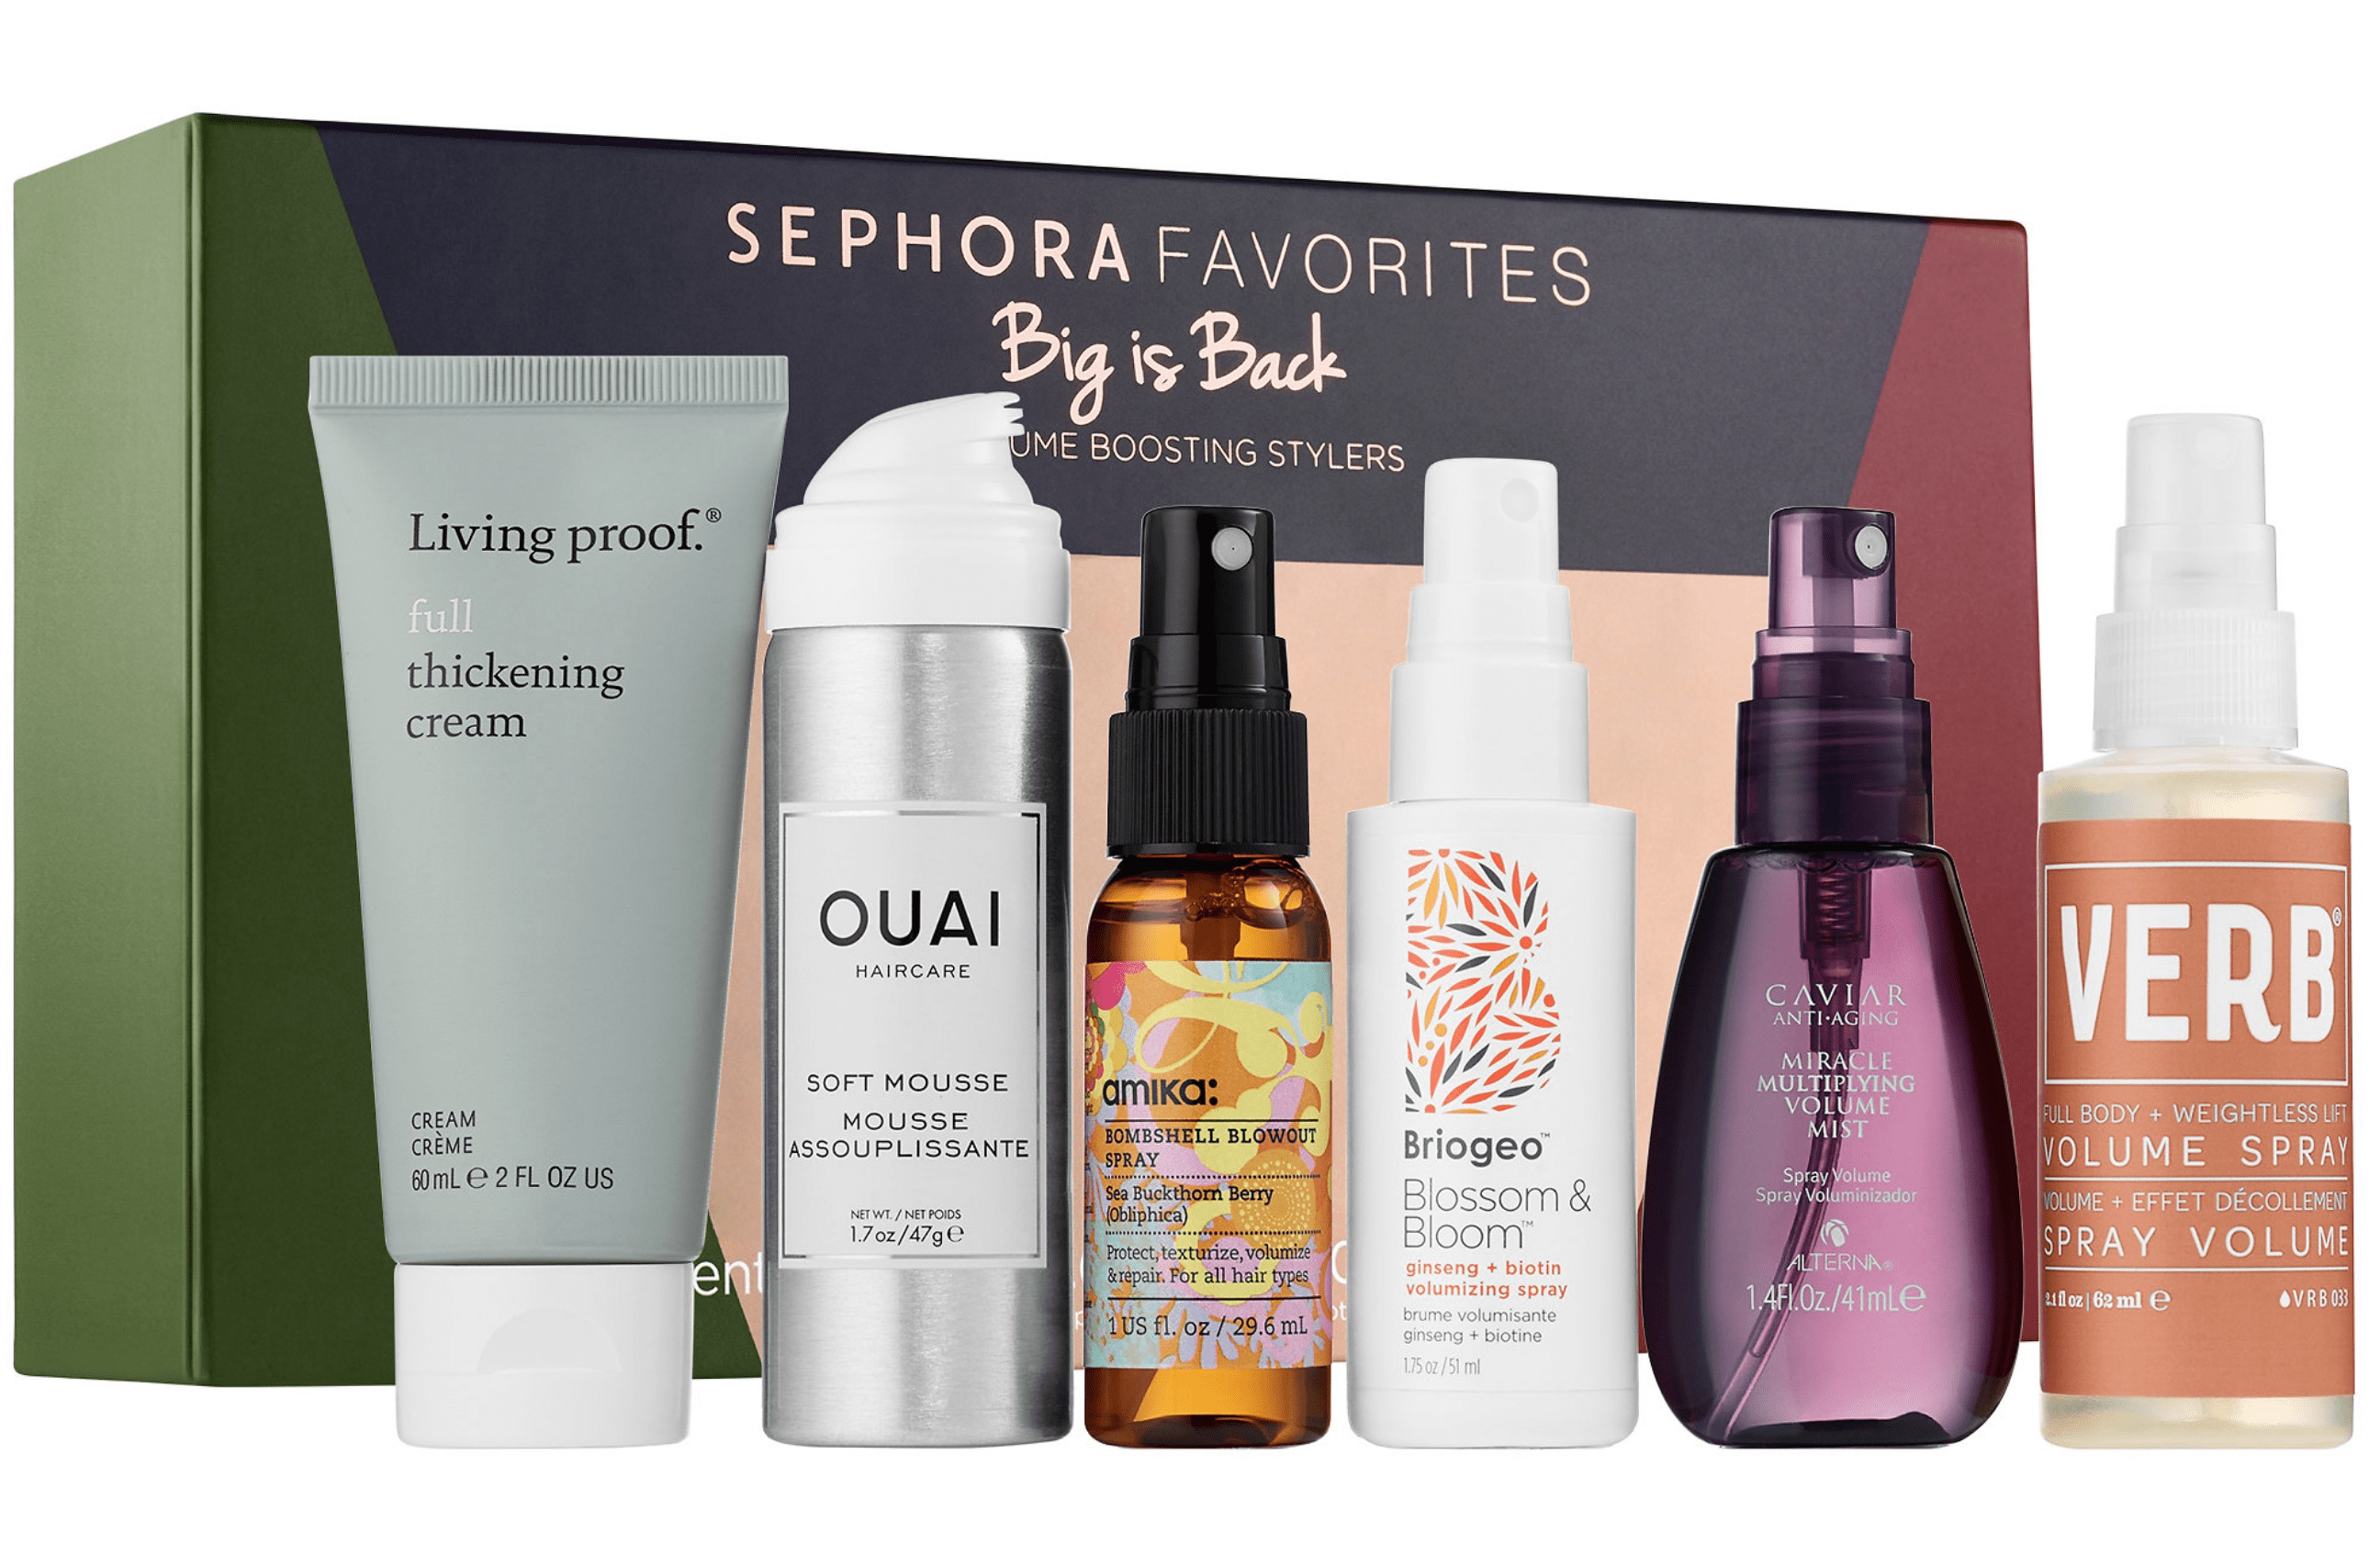 Eight New Sephora Favorites Kits Available Now Hello Subscription Smashbox Photo Bombshell 5 Piece Color Collection Big Is Back 24